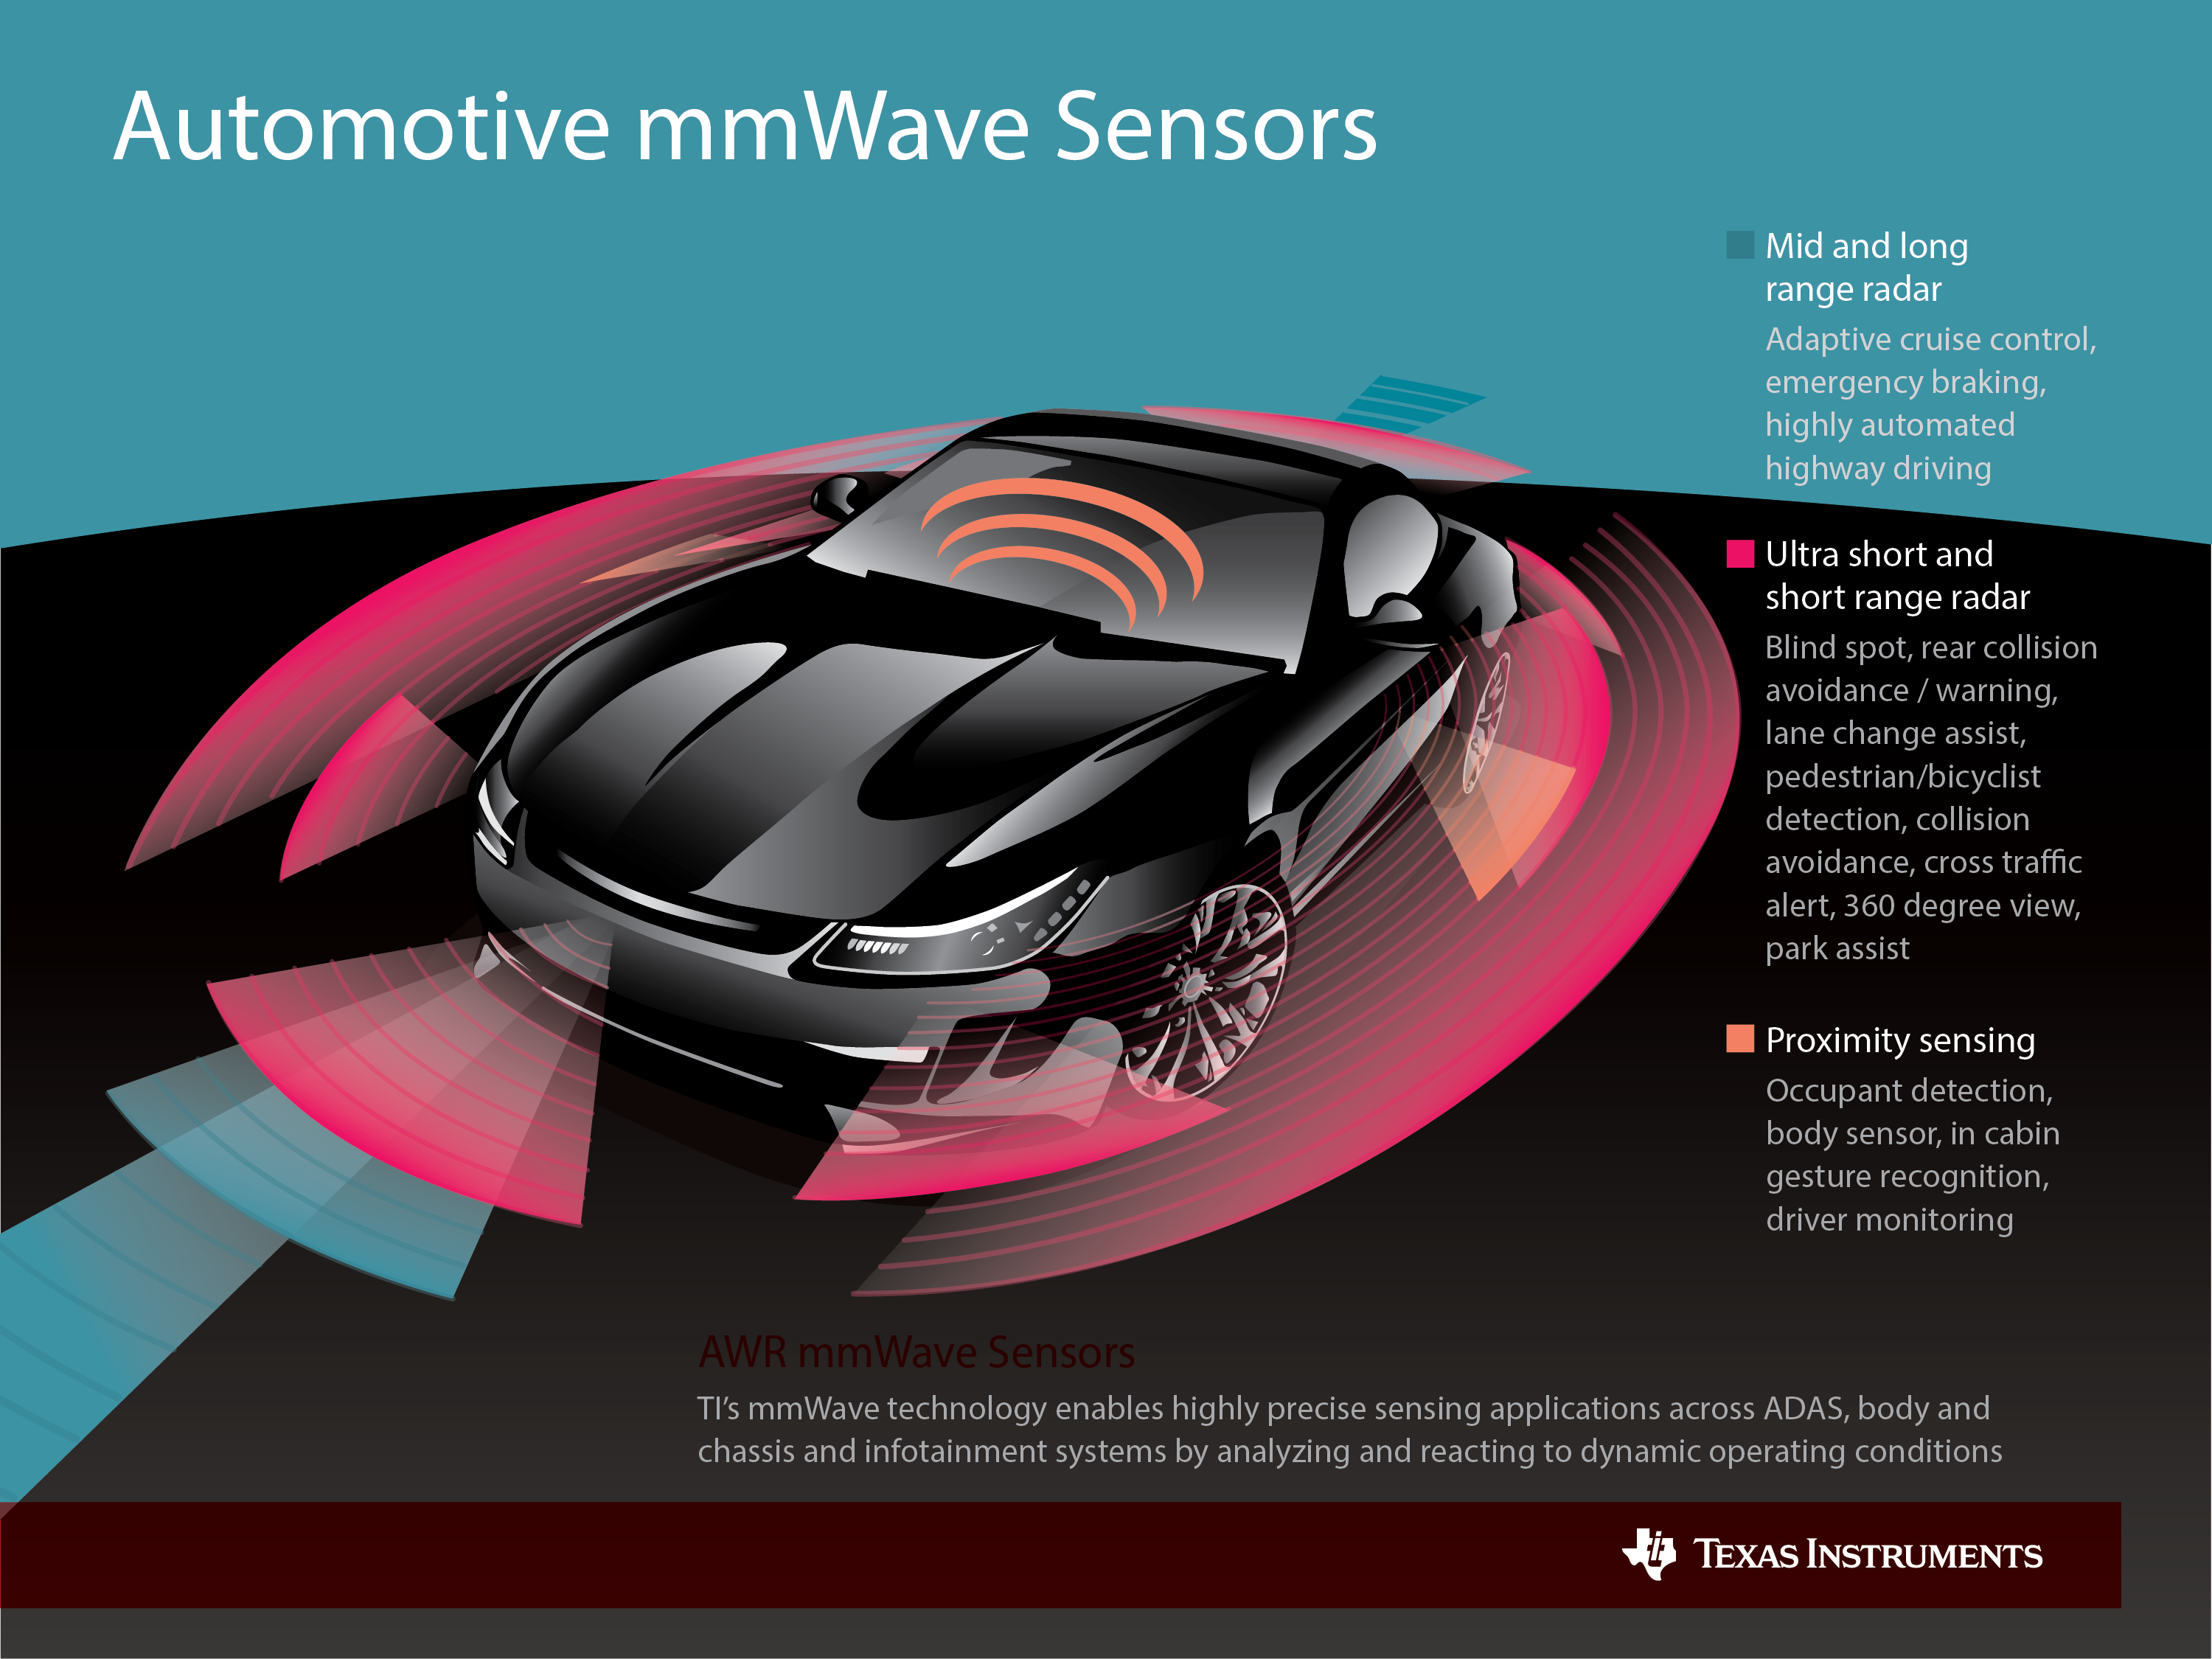 Auto Com Used Cars >> Why are automotive radar systems moving from 24GHz to 77GHz? - Behind the Wheel - Blogs - TI E2E ...